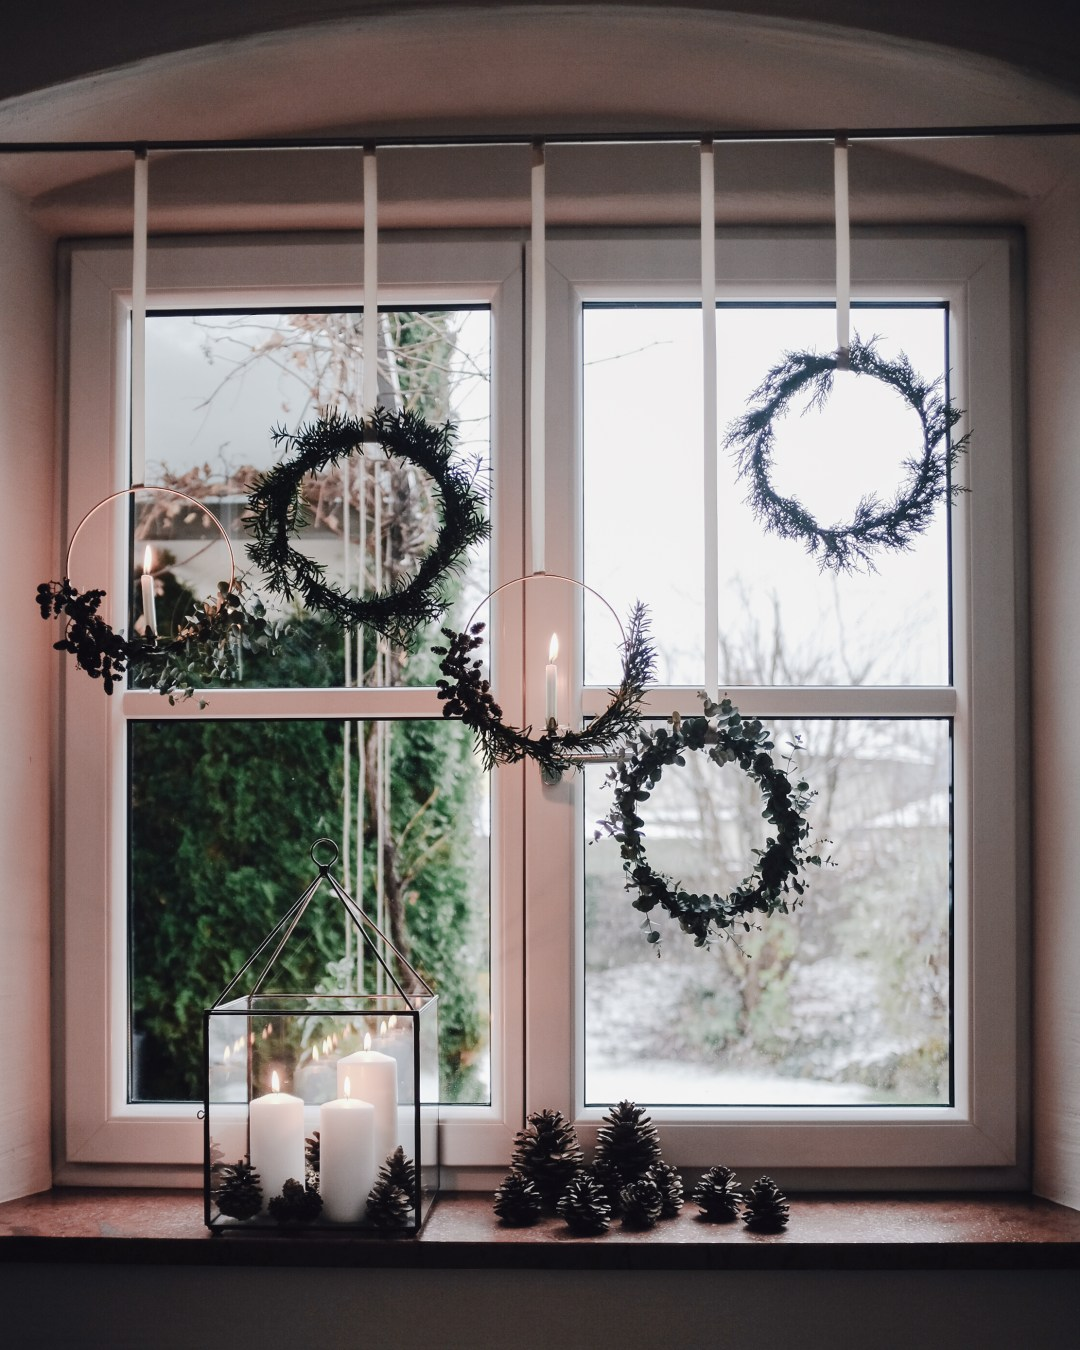 weihnachtsdekoration, Inastil, Ü50Blog, christmasdecoration, kranz, wreath, advent, homedecoration, adventkranz, lifestyle,_-18